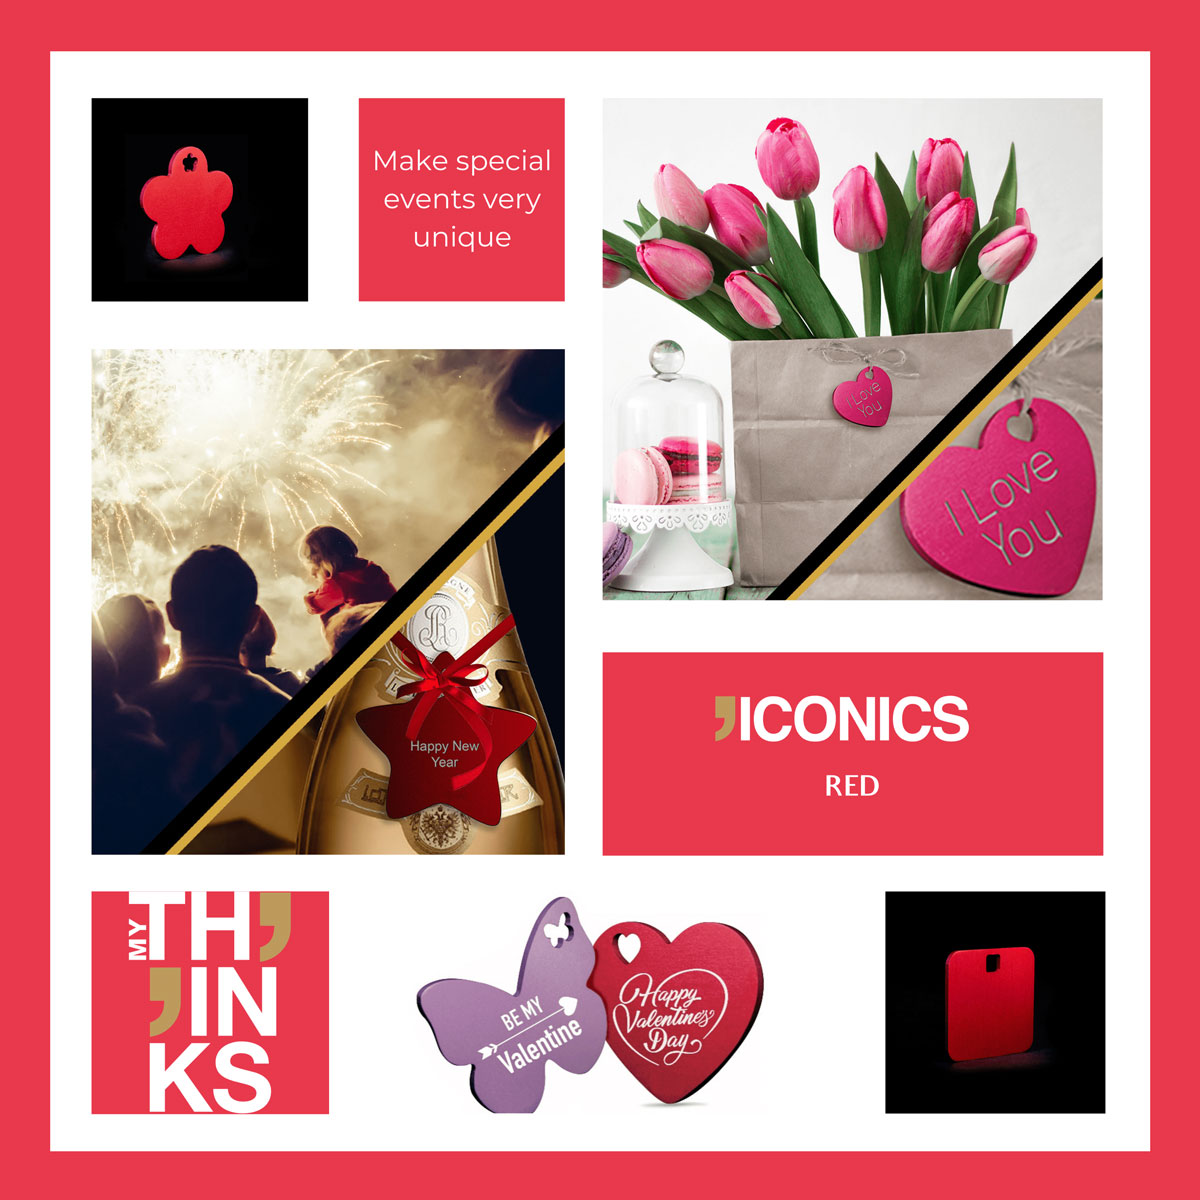 Mood board Iconics collection gifts in red color medal personalized for the celebration and personal events markets